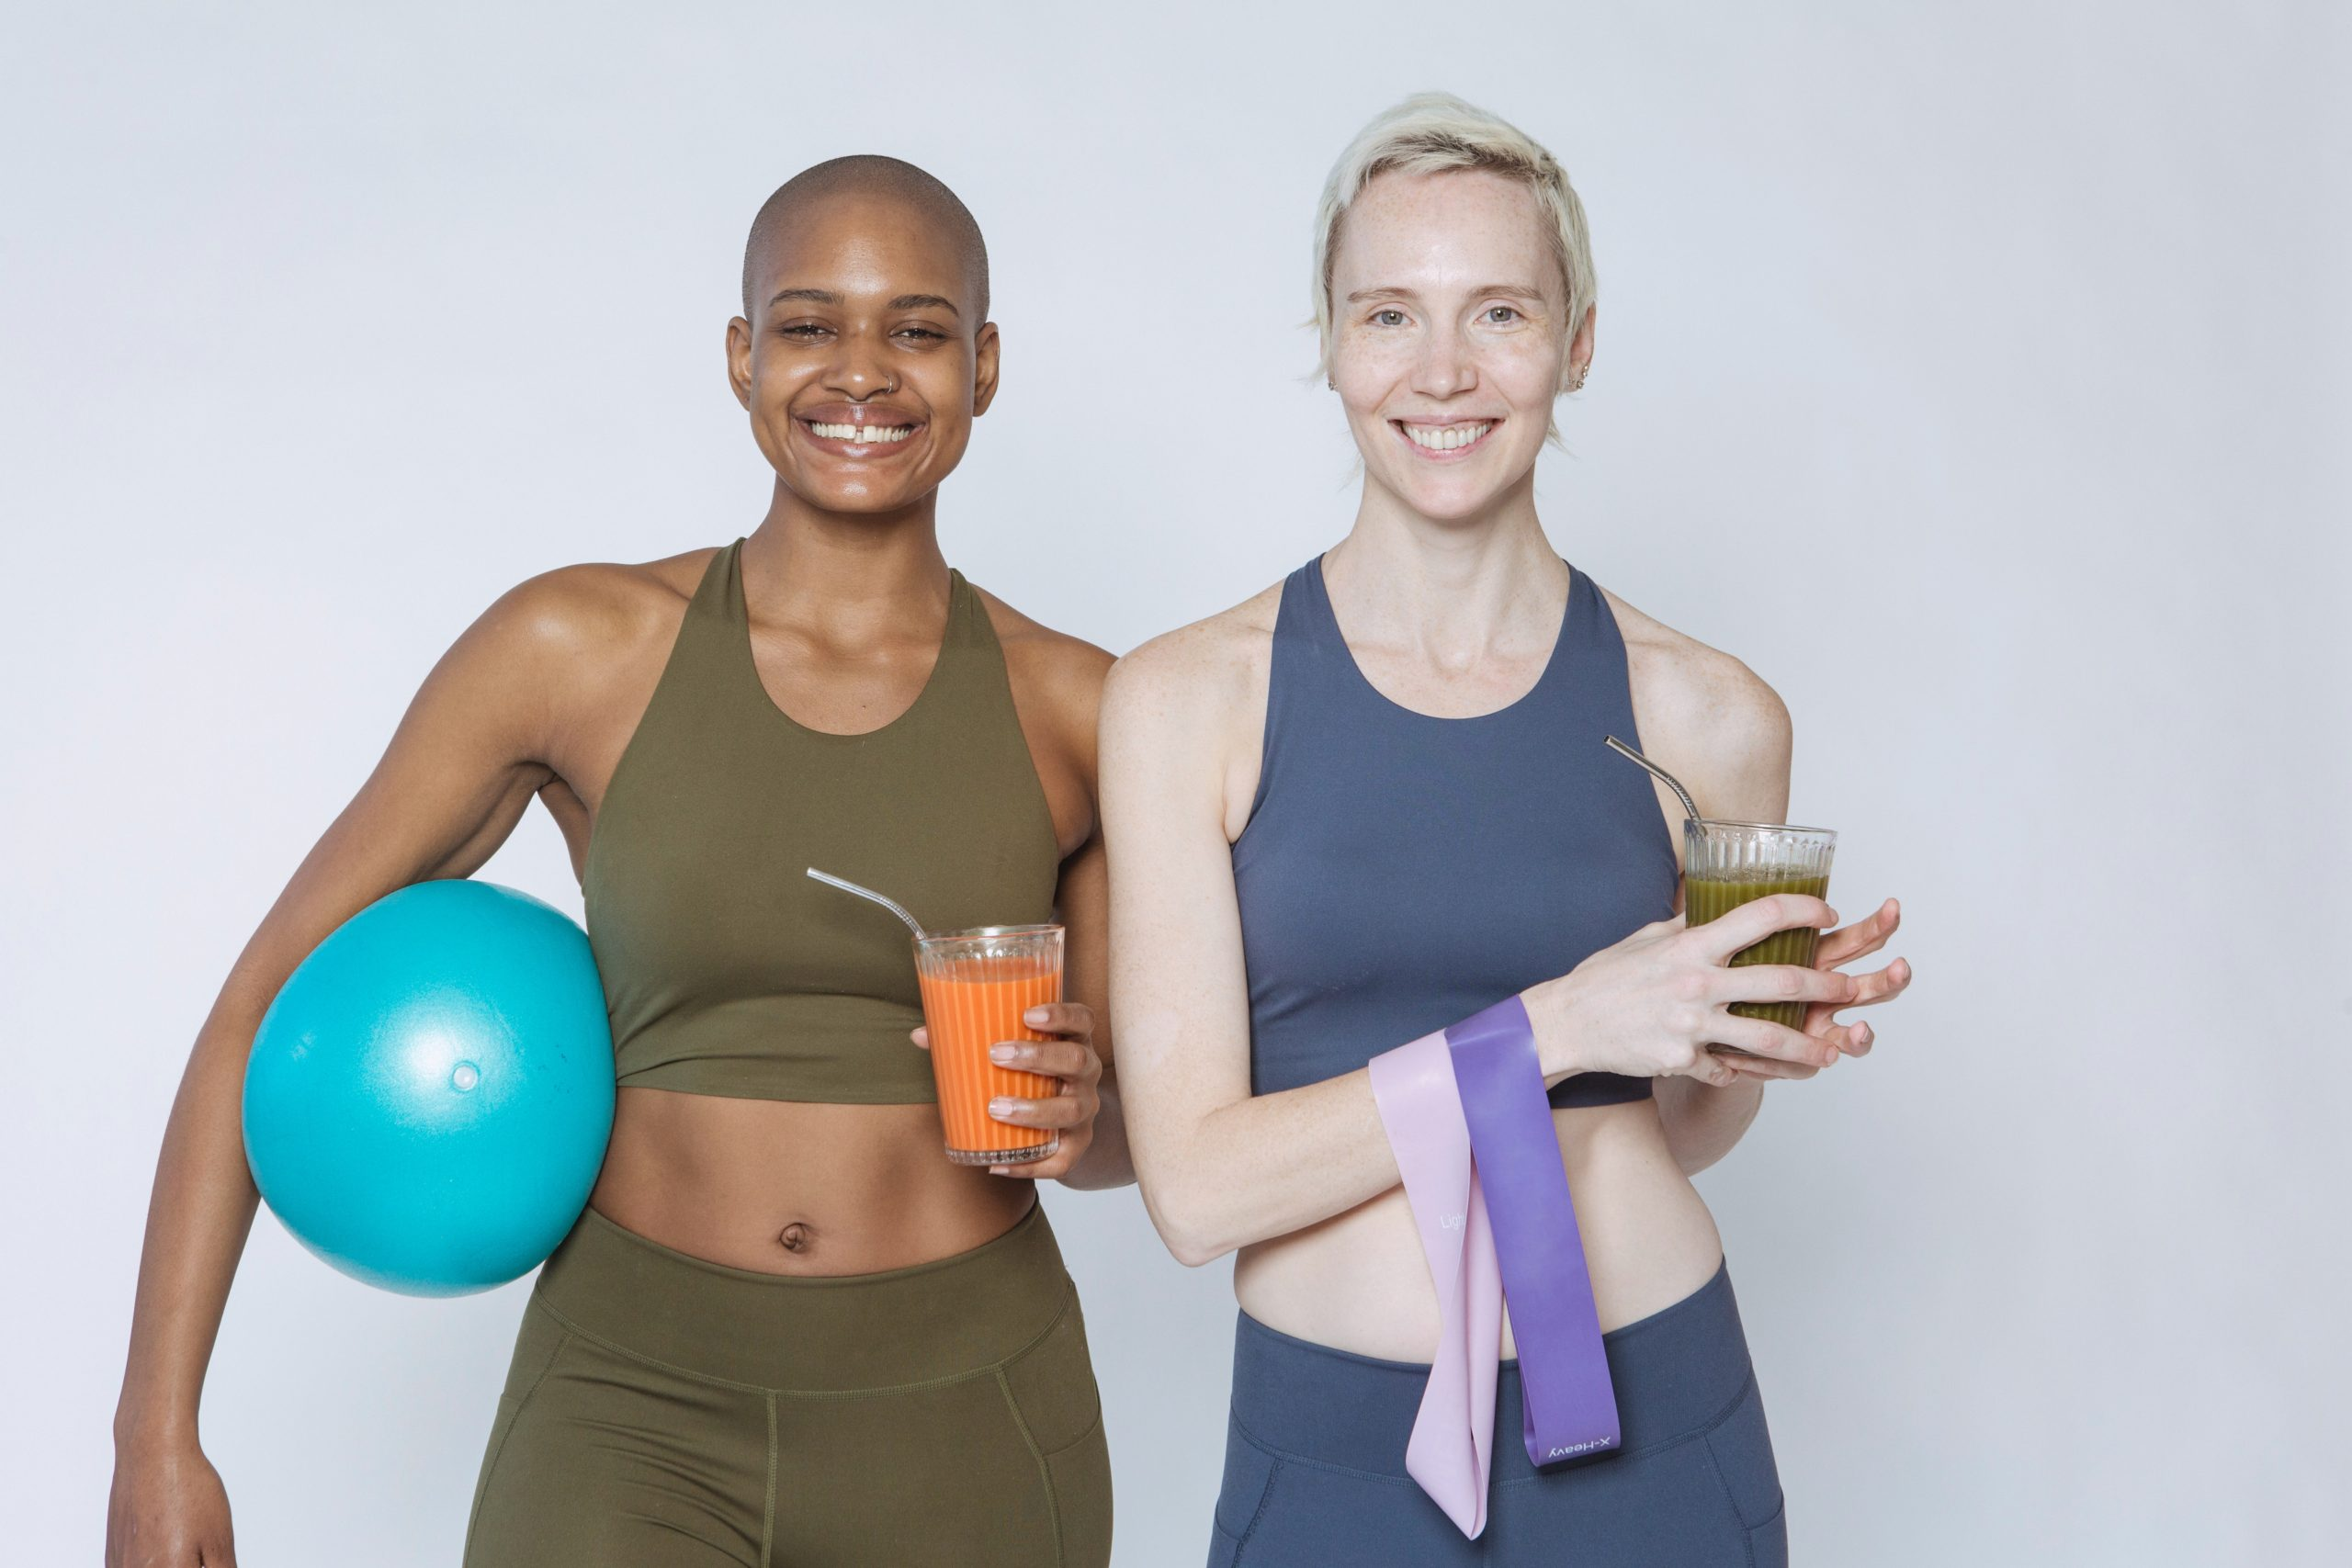 two women in workout clothing with a ball and resistance band